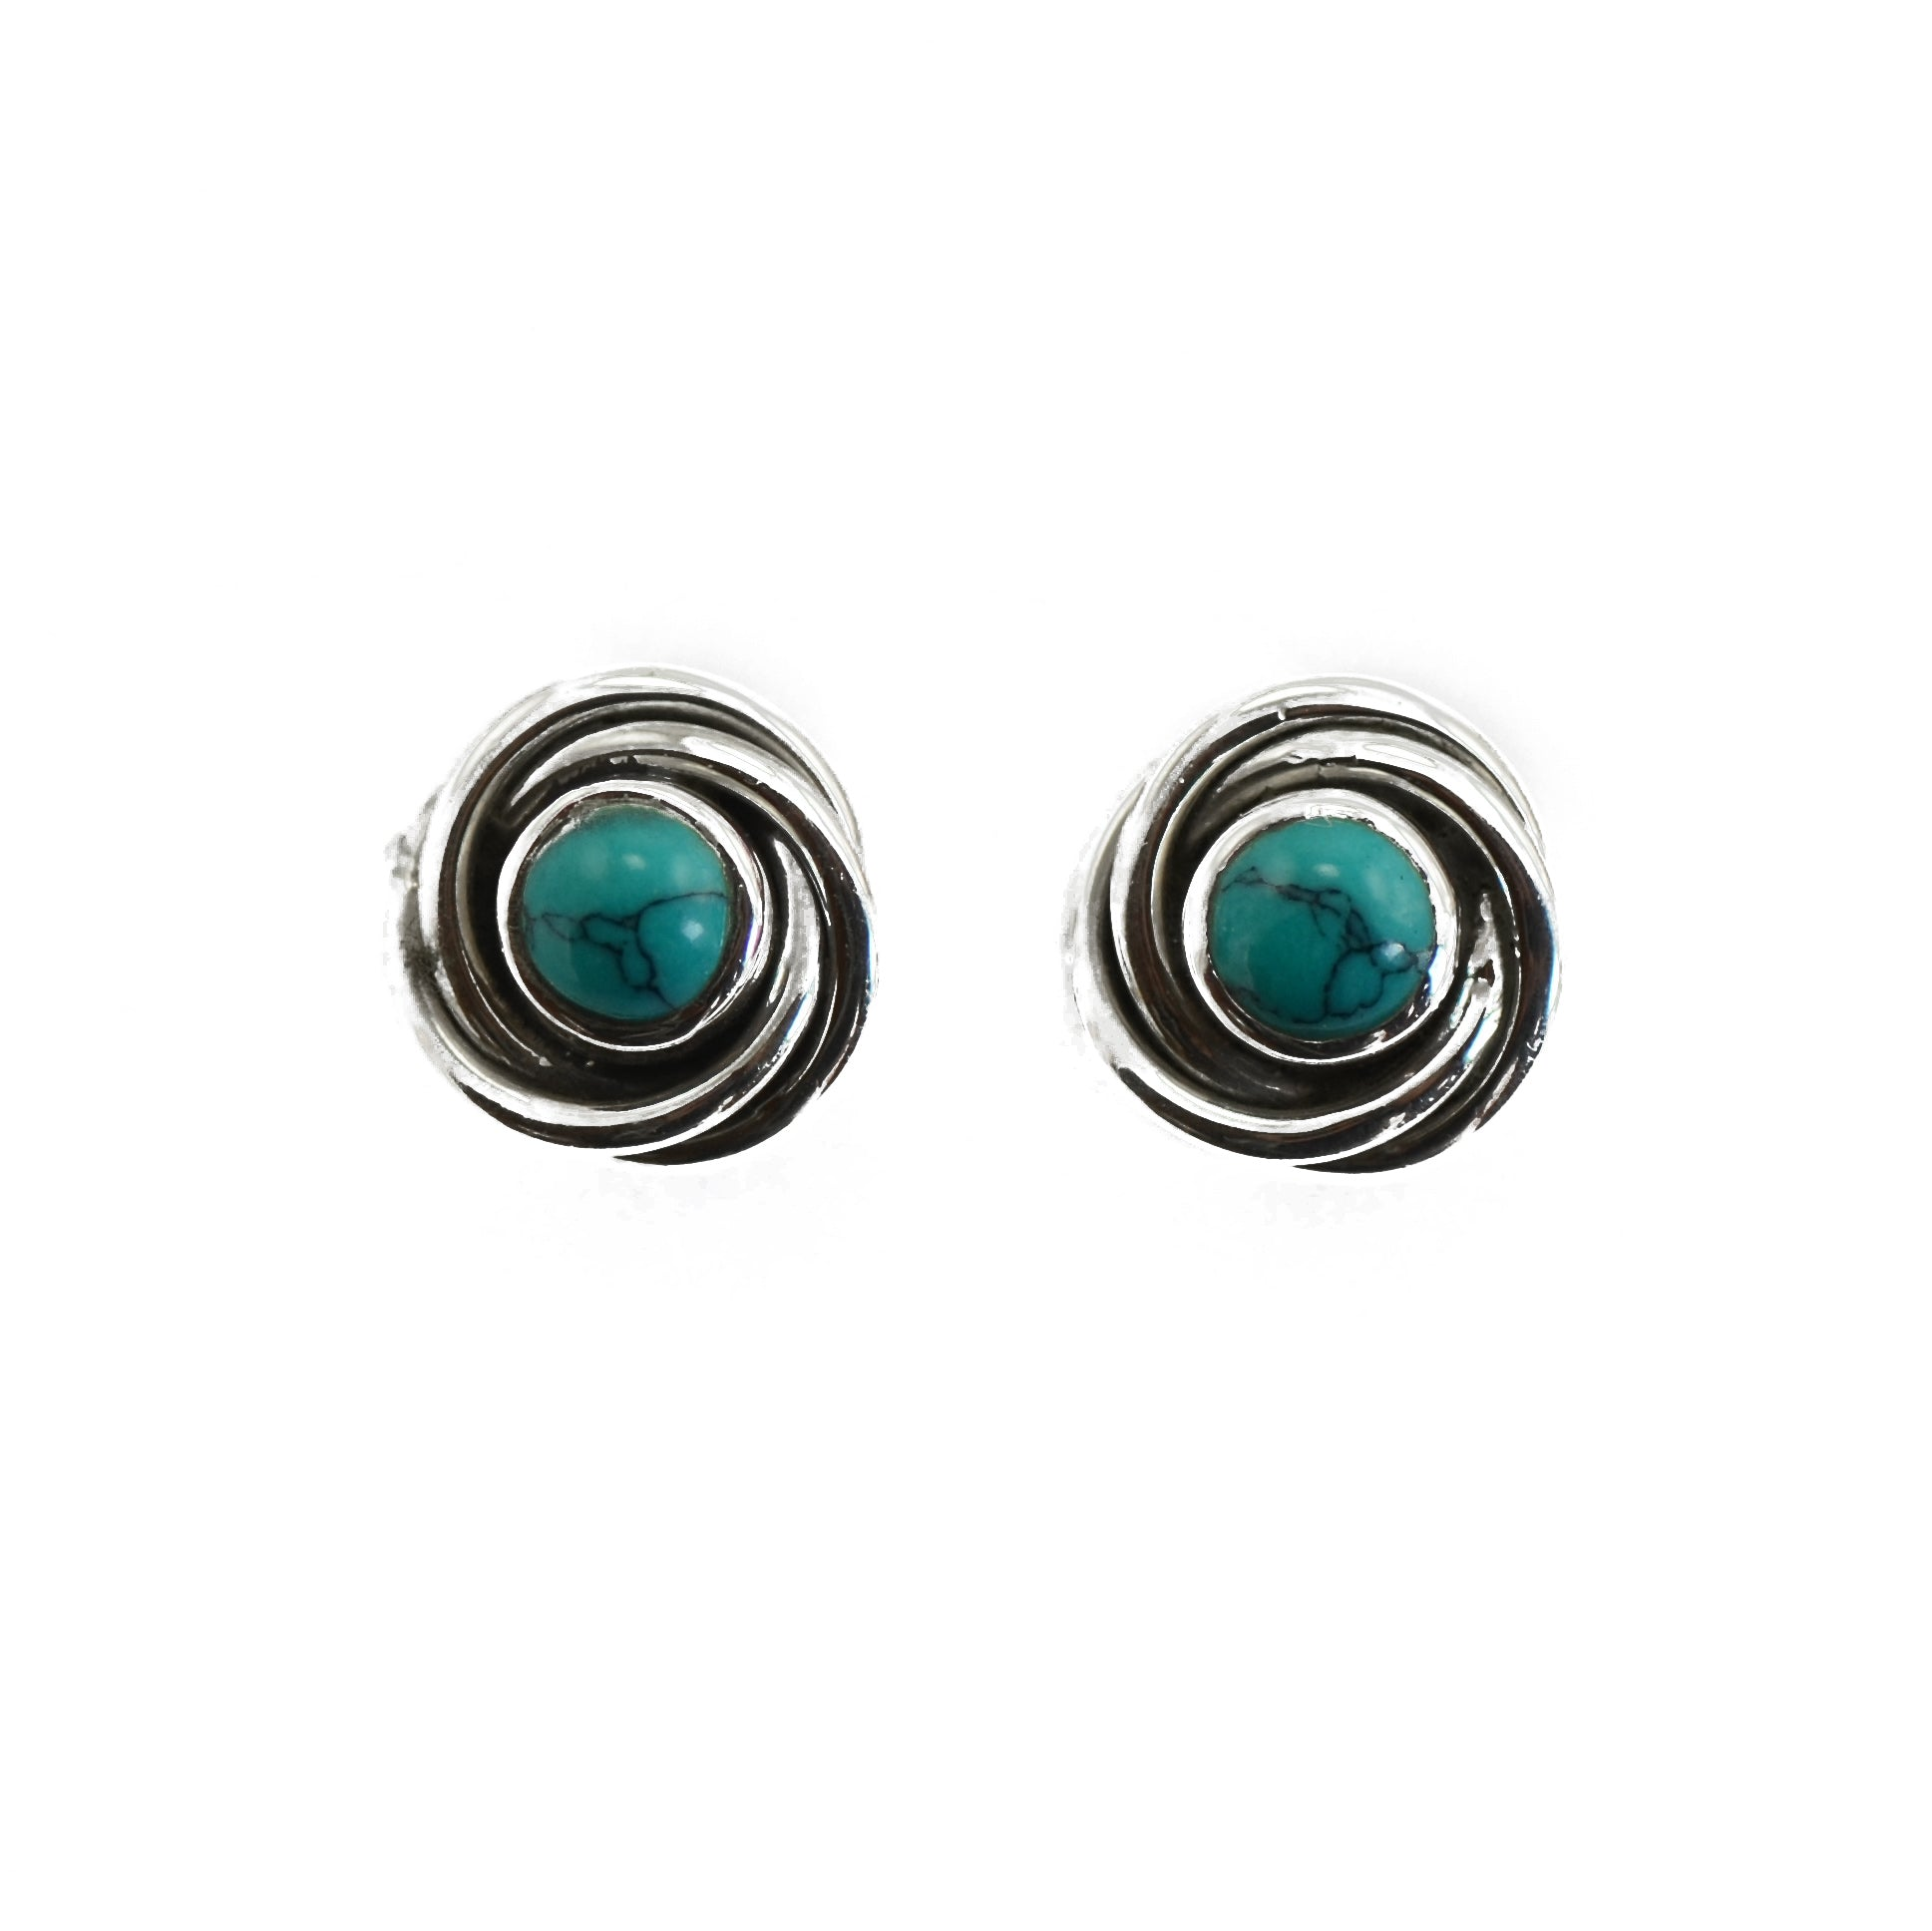 Turquoise Tornado Stud Earrings